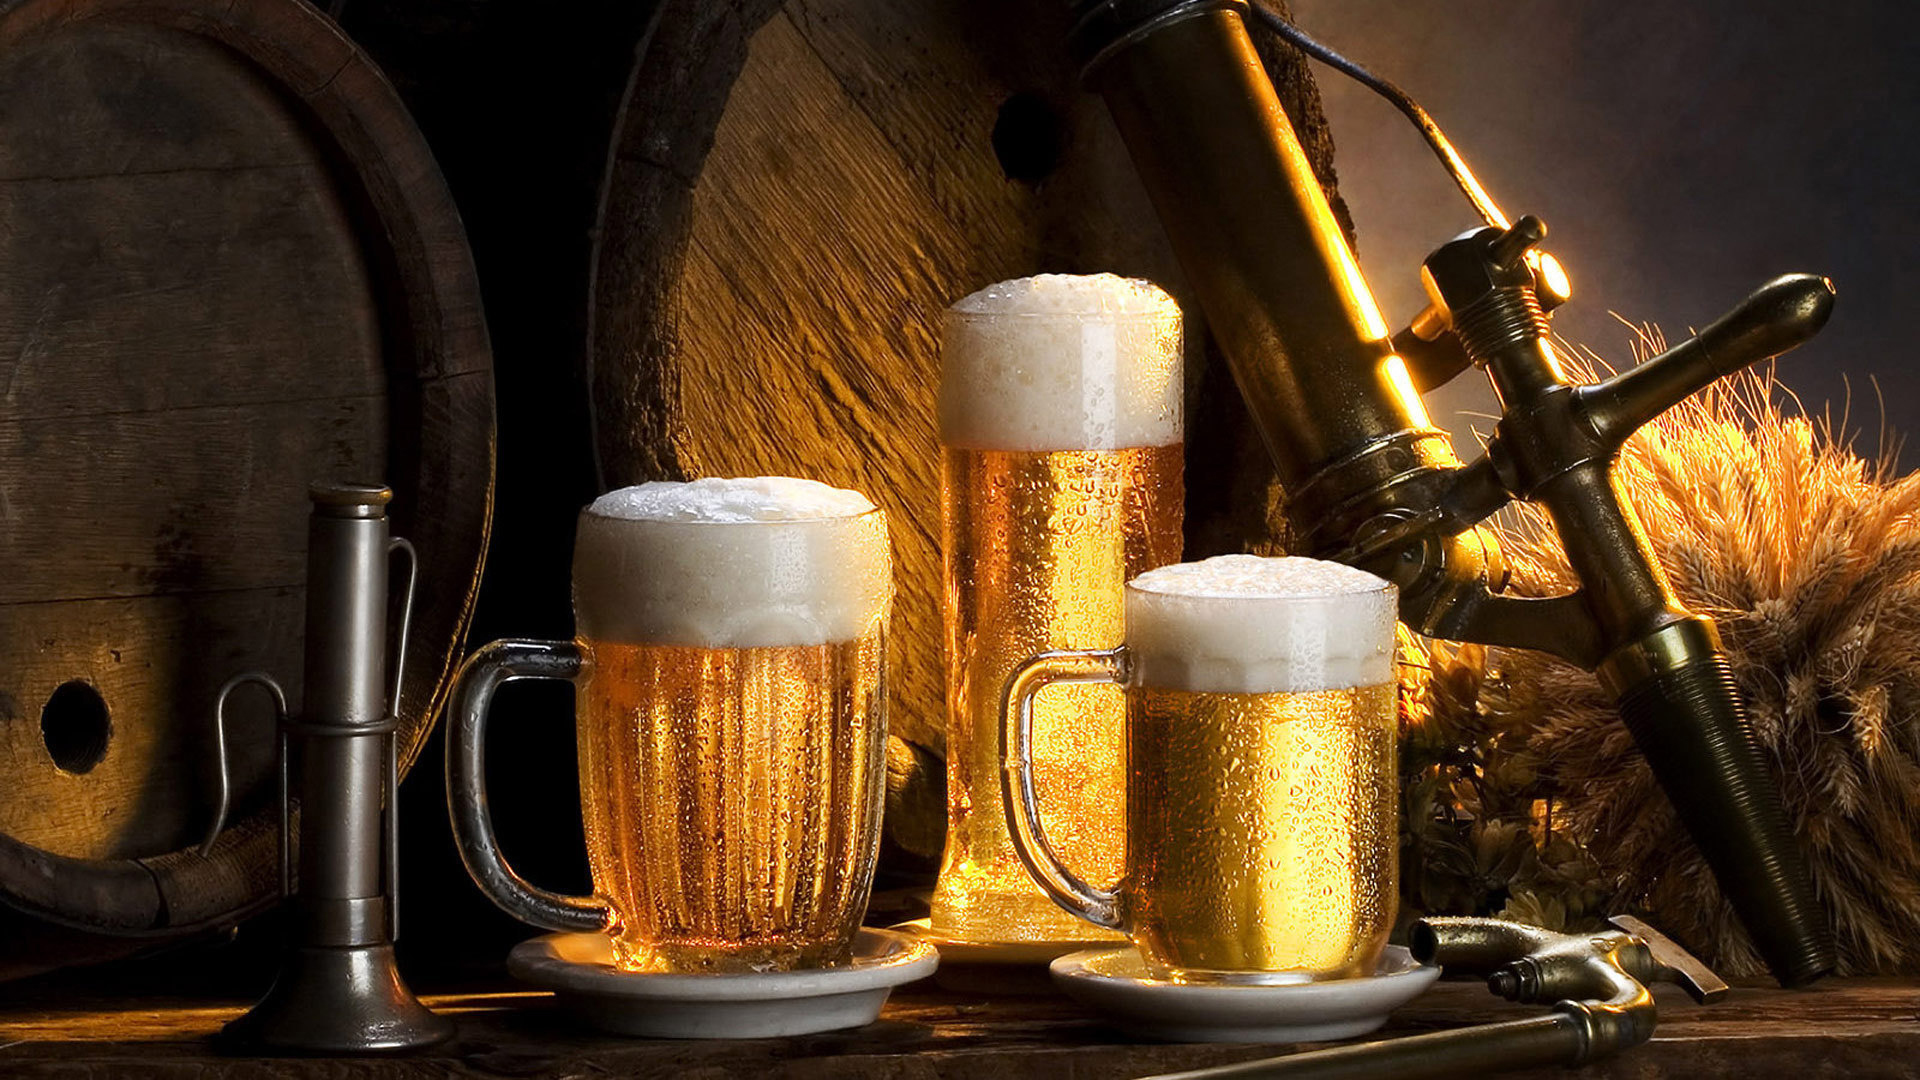 beer hd wallpaper background image 1920x1080 id 359942